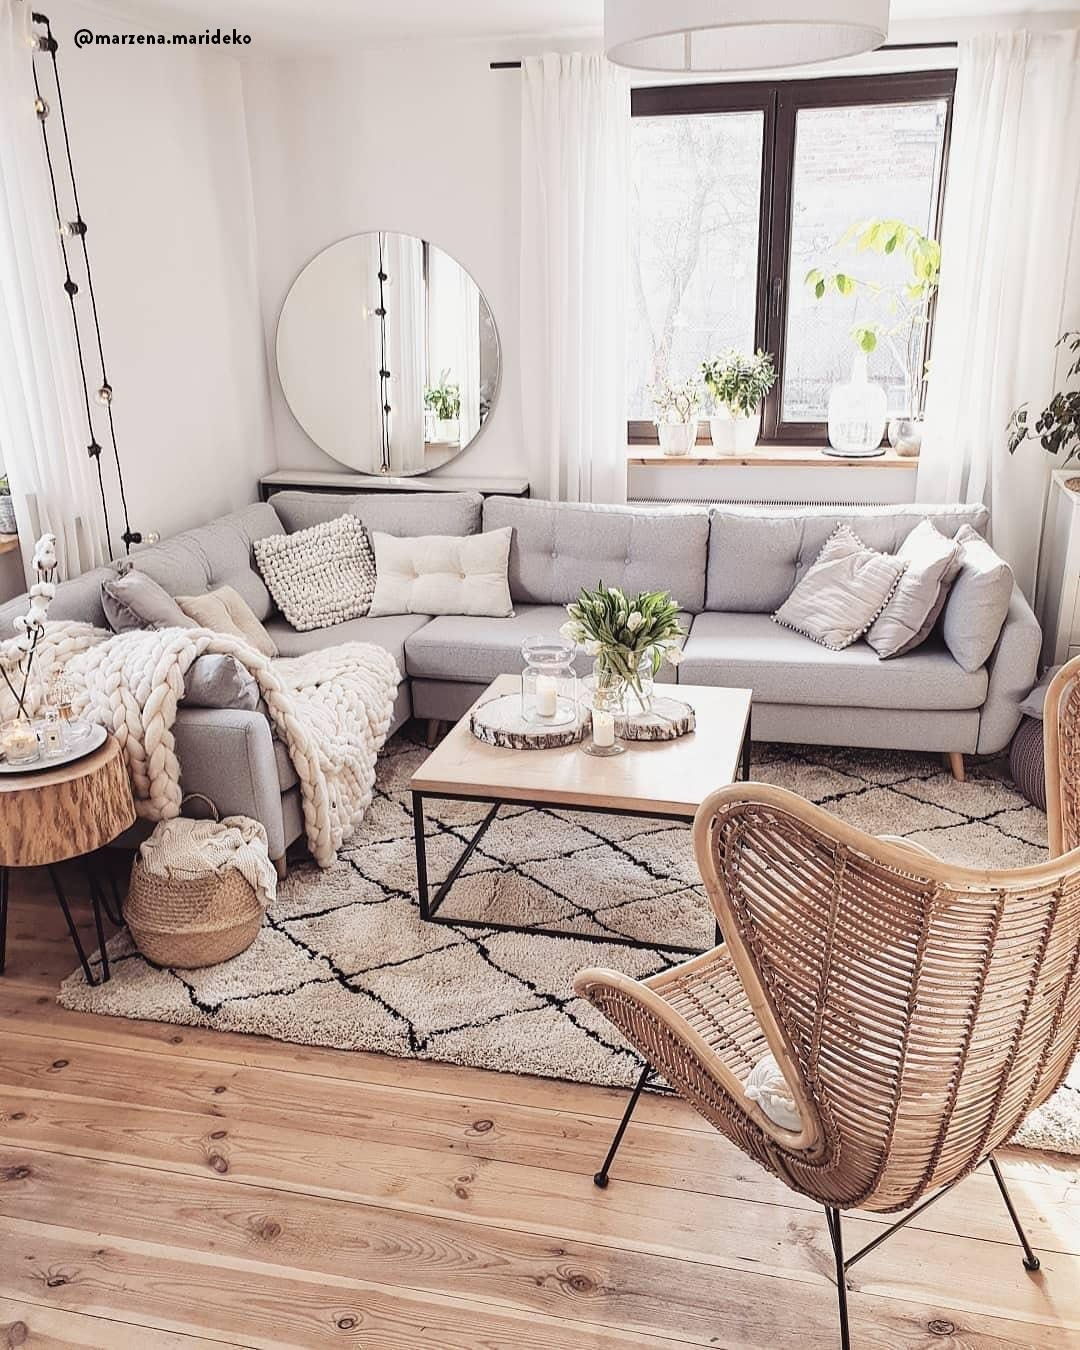 Awesome Living Room Wood Floor Decoration Ideas That You Need To Try 29